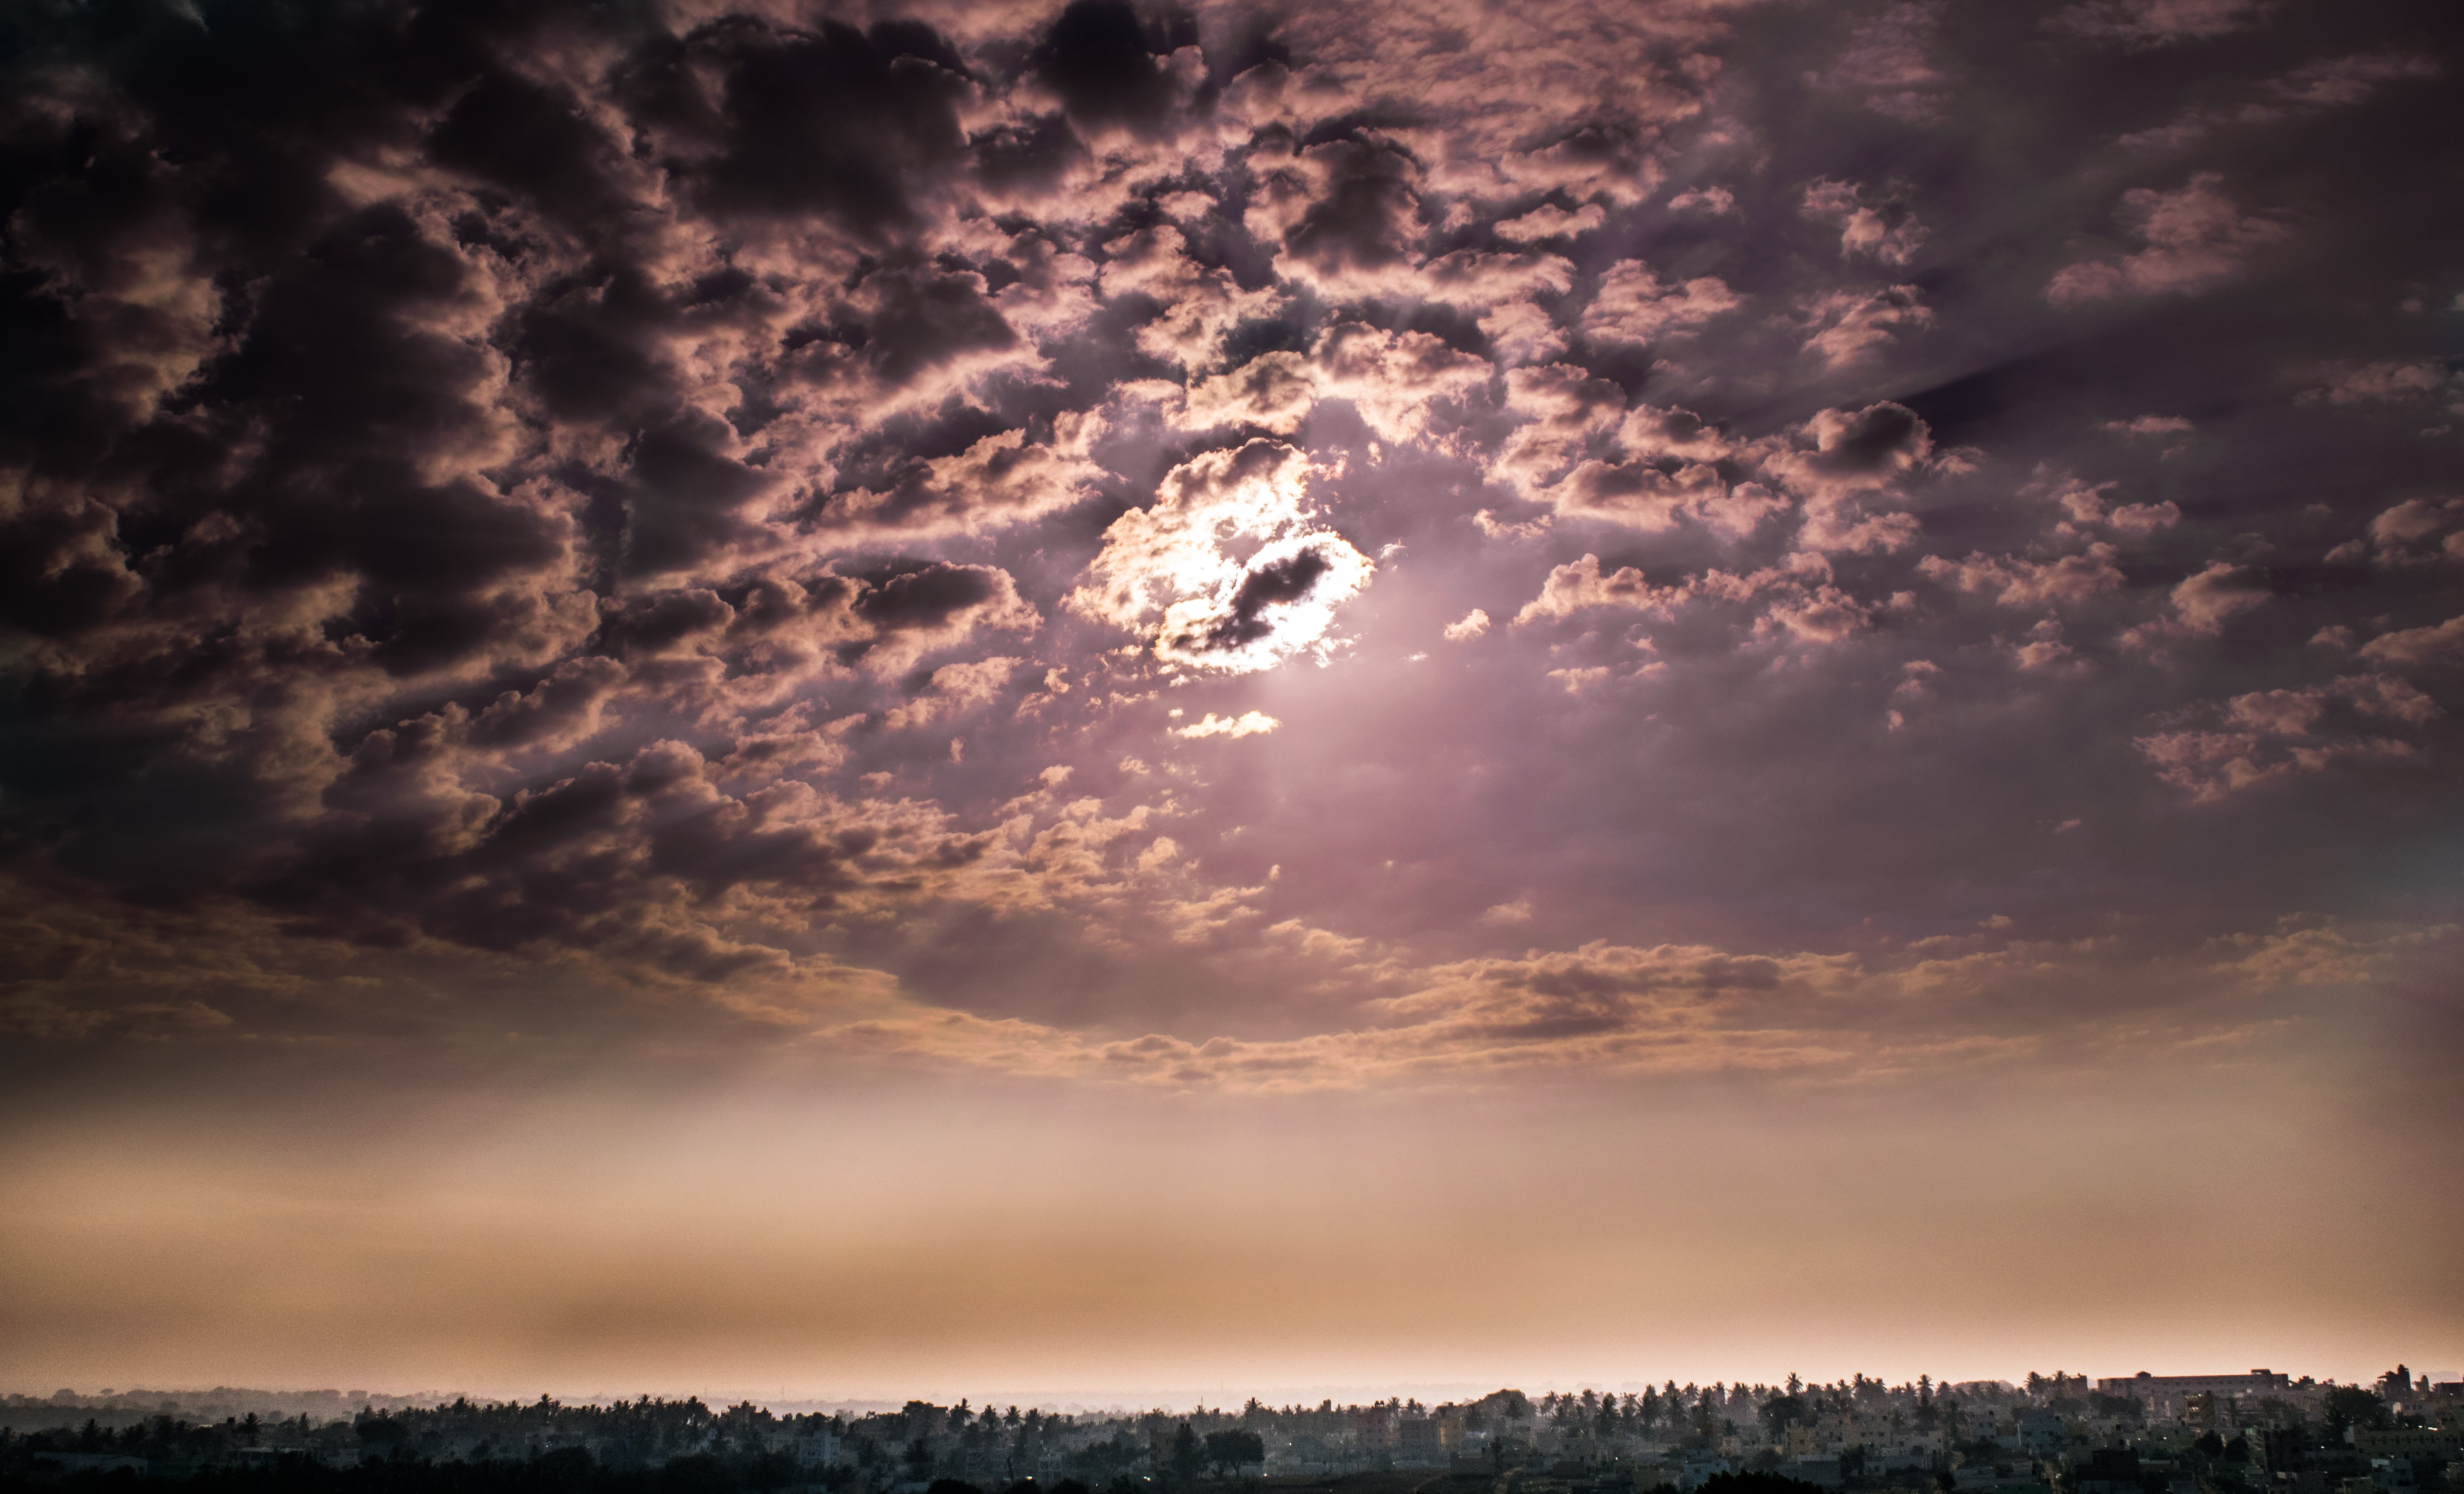 sun covered by cloudy sky